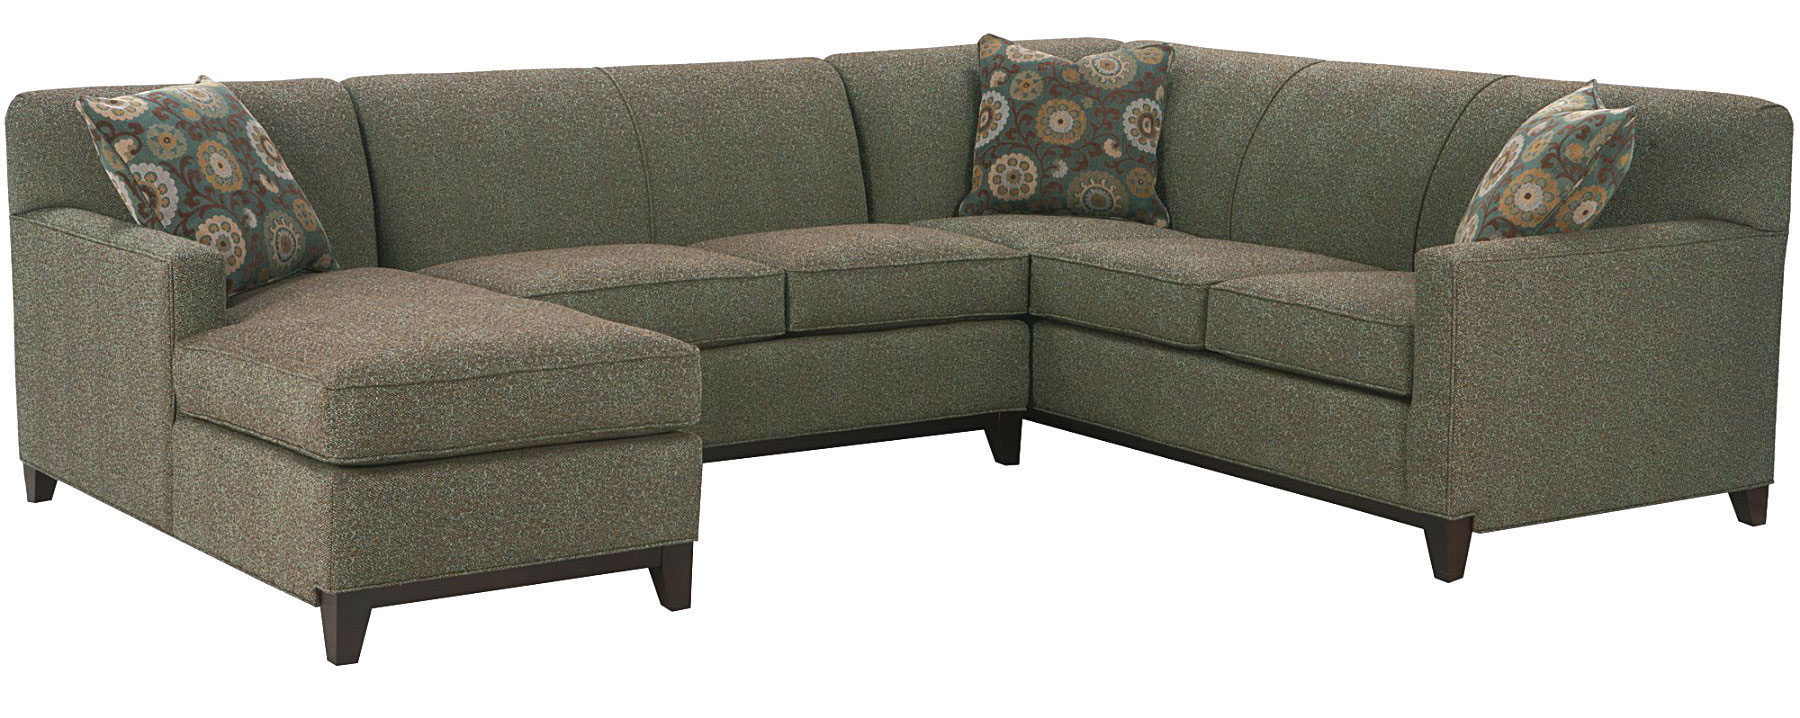 Back Sectional Sofa In Grey Three Throw Pillows